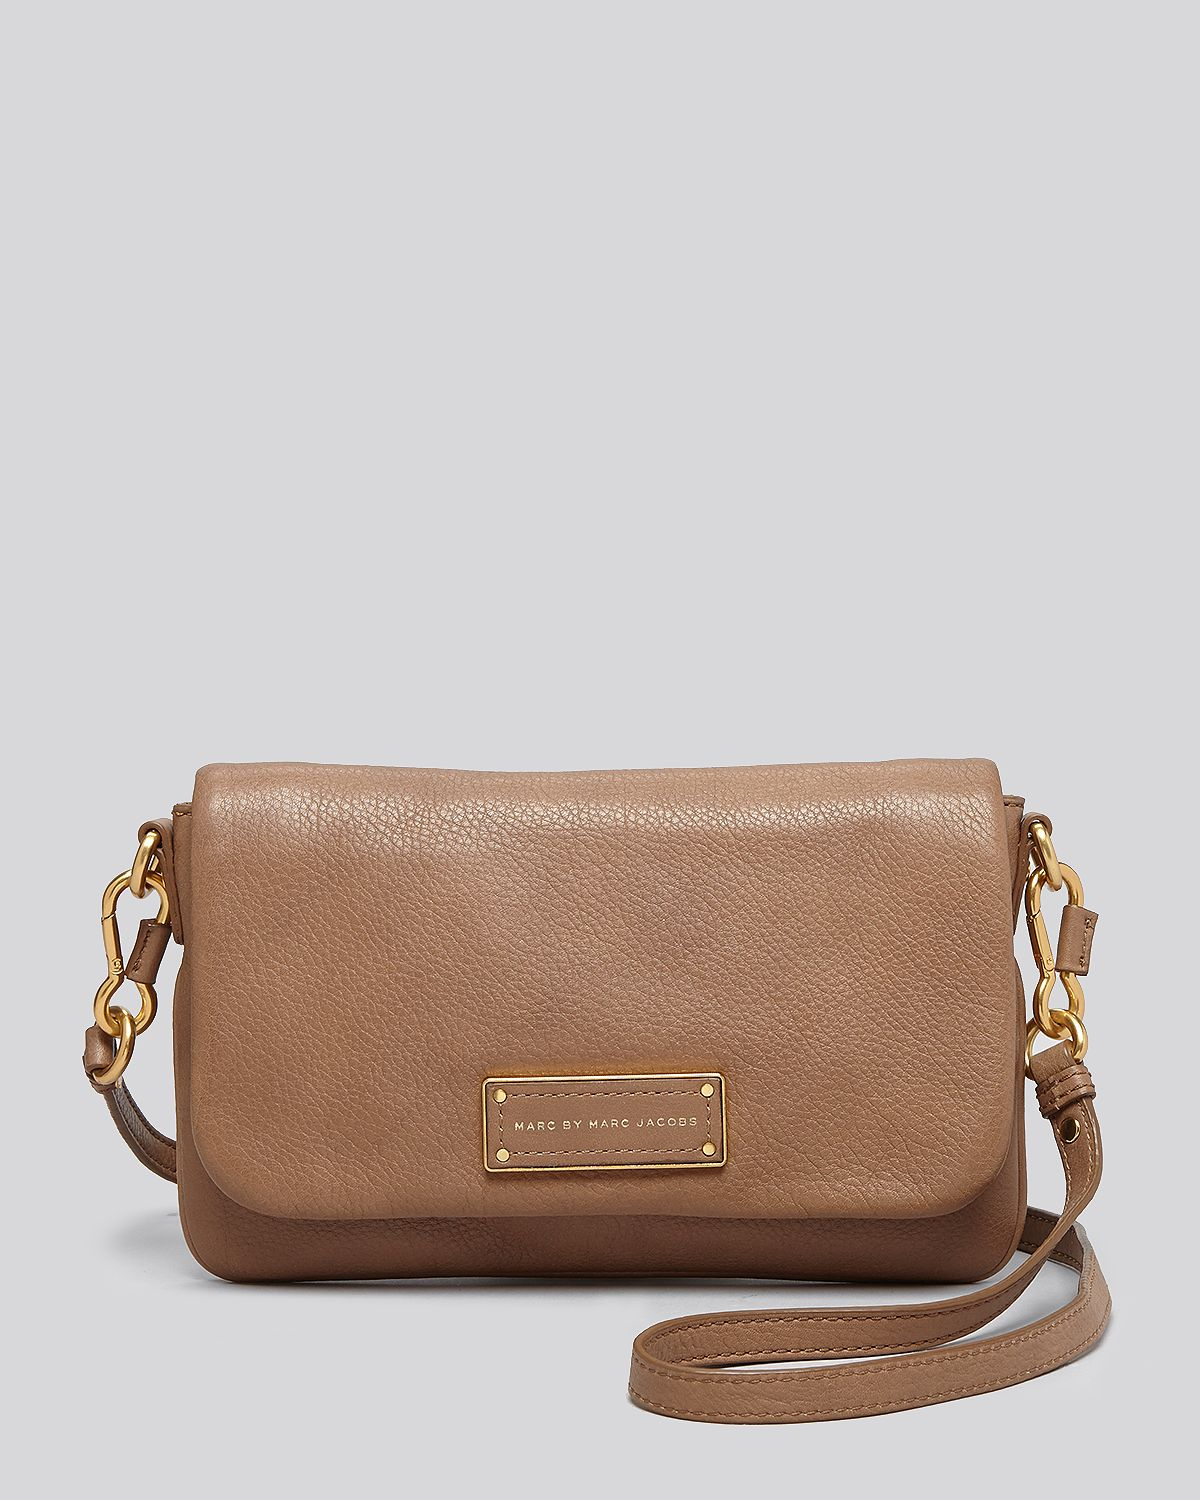 c1afb1671aa2 Marc By Marc Jacobs Too Hot To Handle Crossbody Bag - Best Model Bag ...